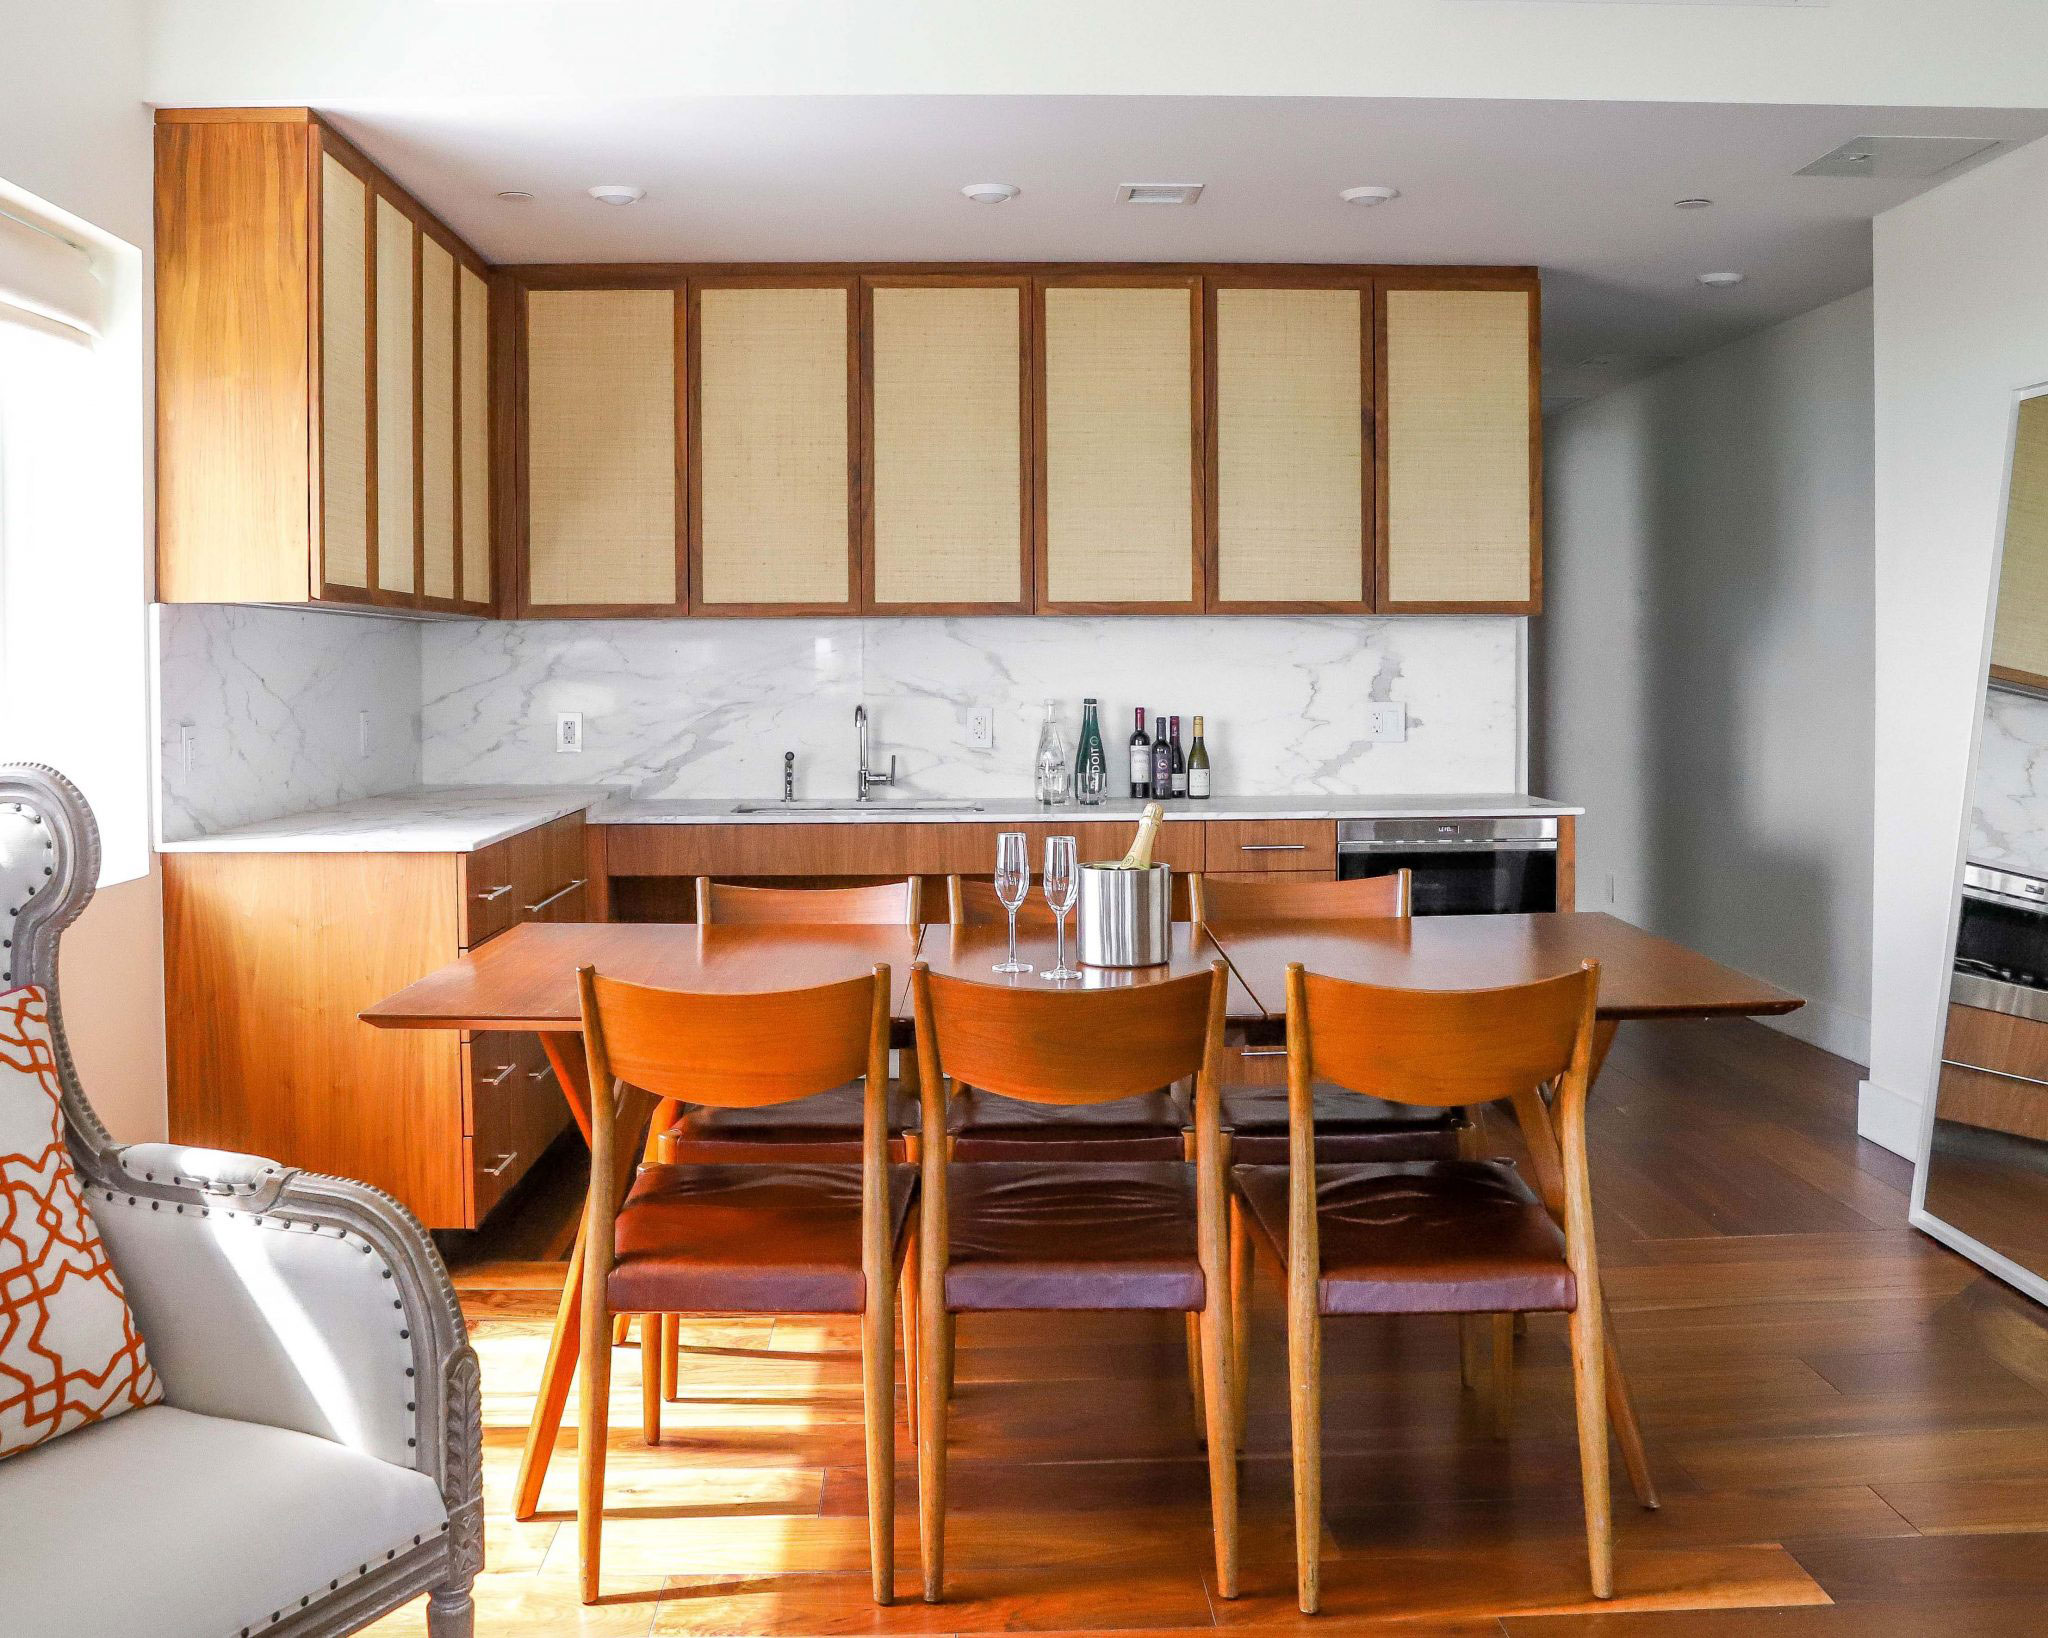 Kitchen area with table and 4 chairs